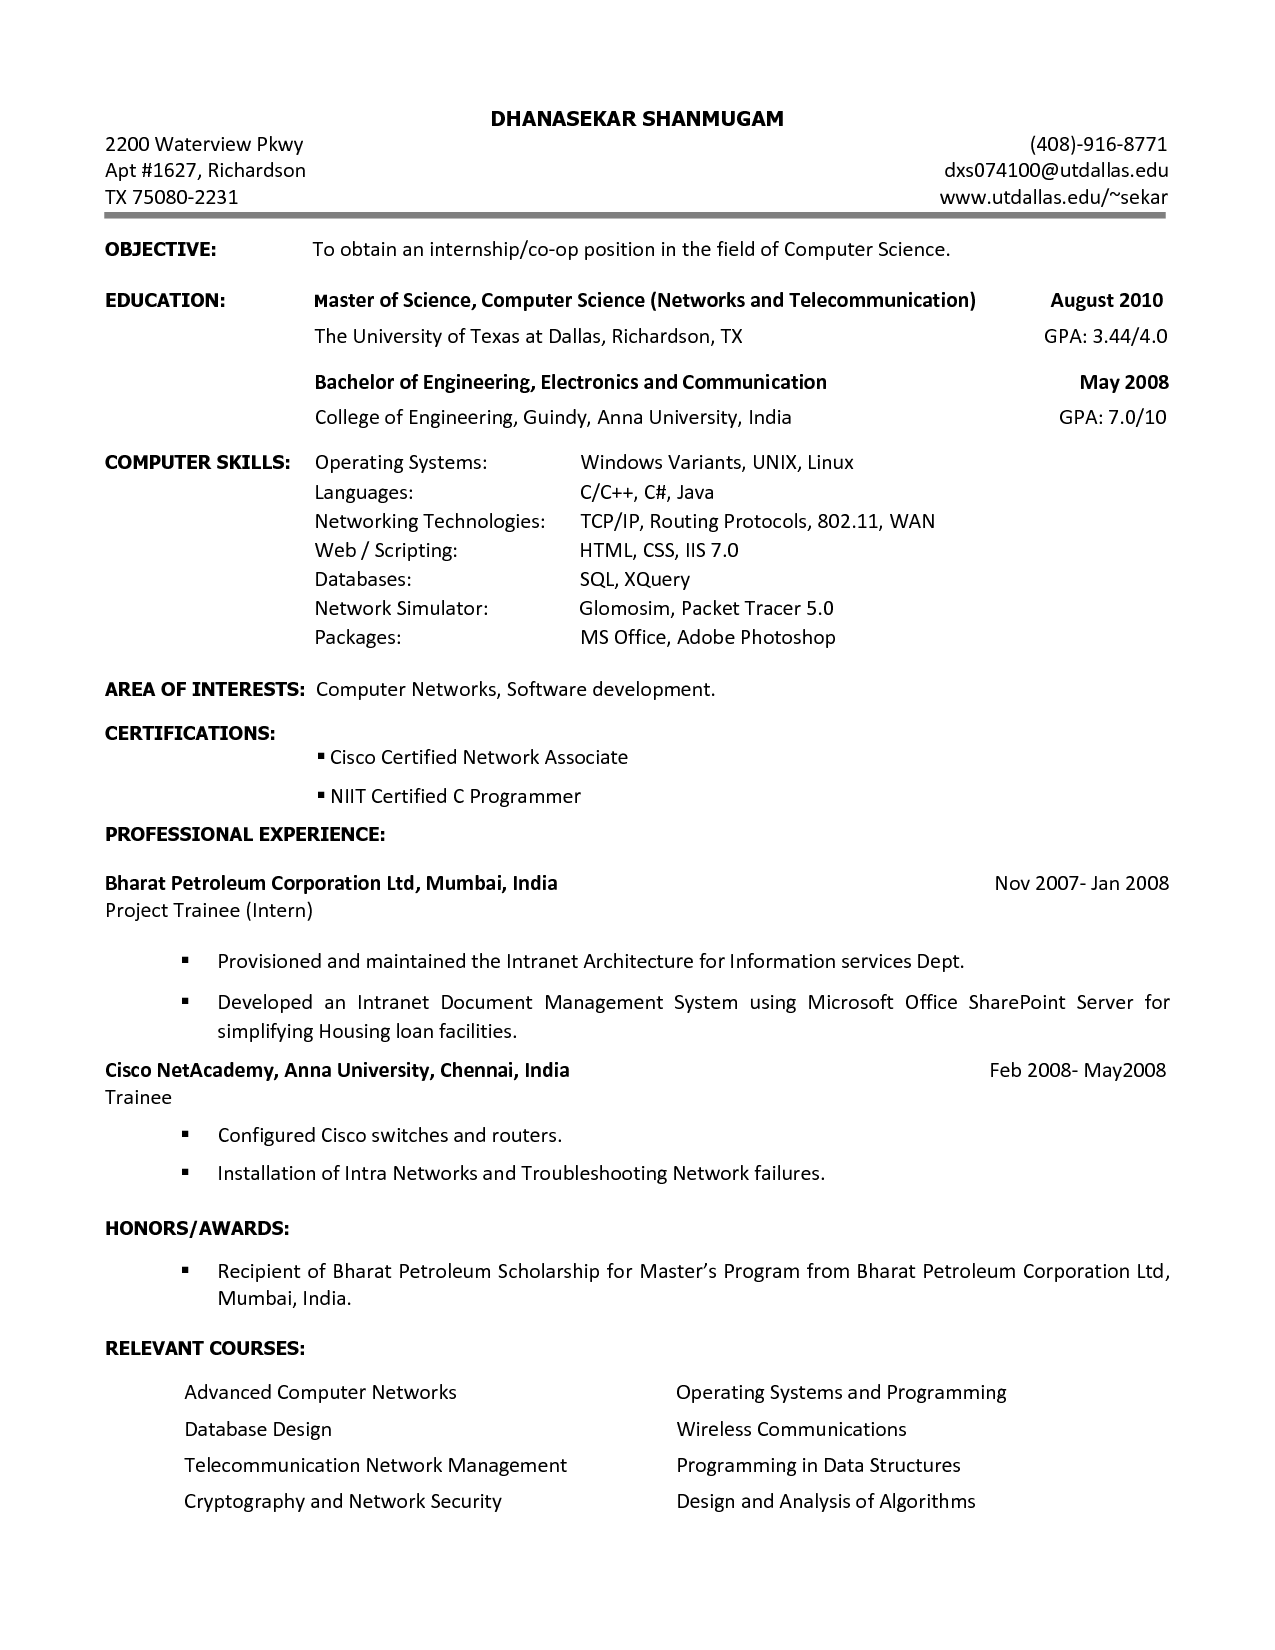 Free Resume Templates Windows 7 Resume Templates Pinterest